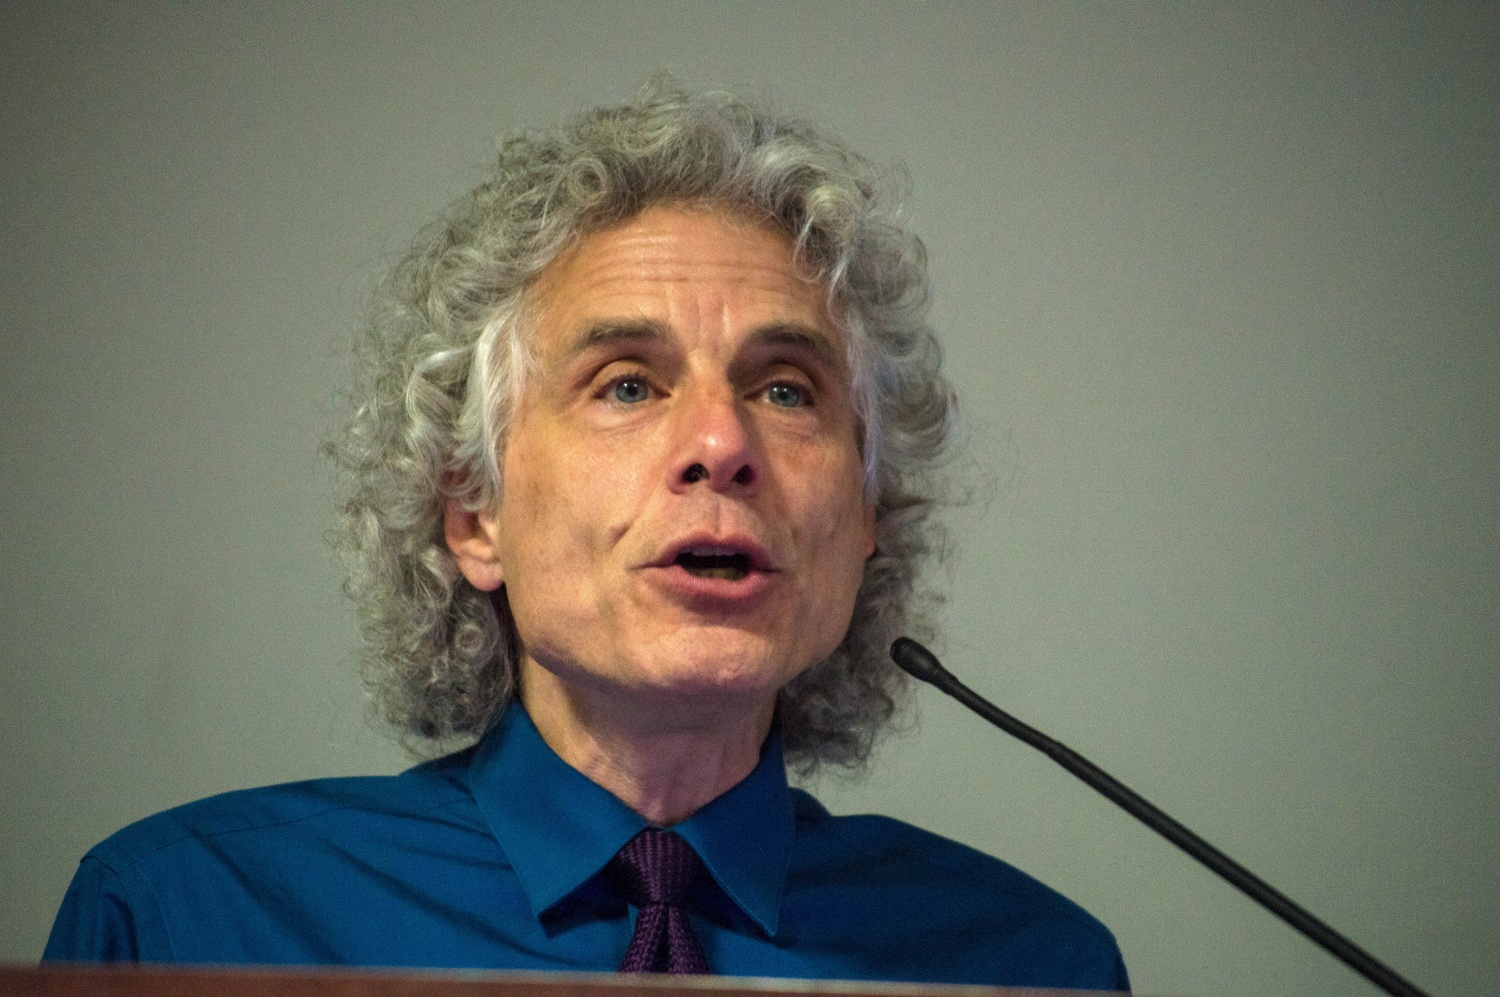 Psychology professor Steven A. Pinker, pictured here in 2015.